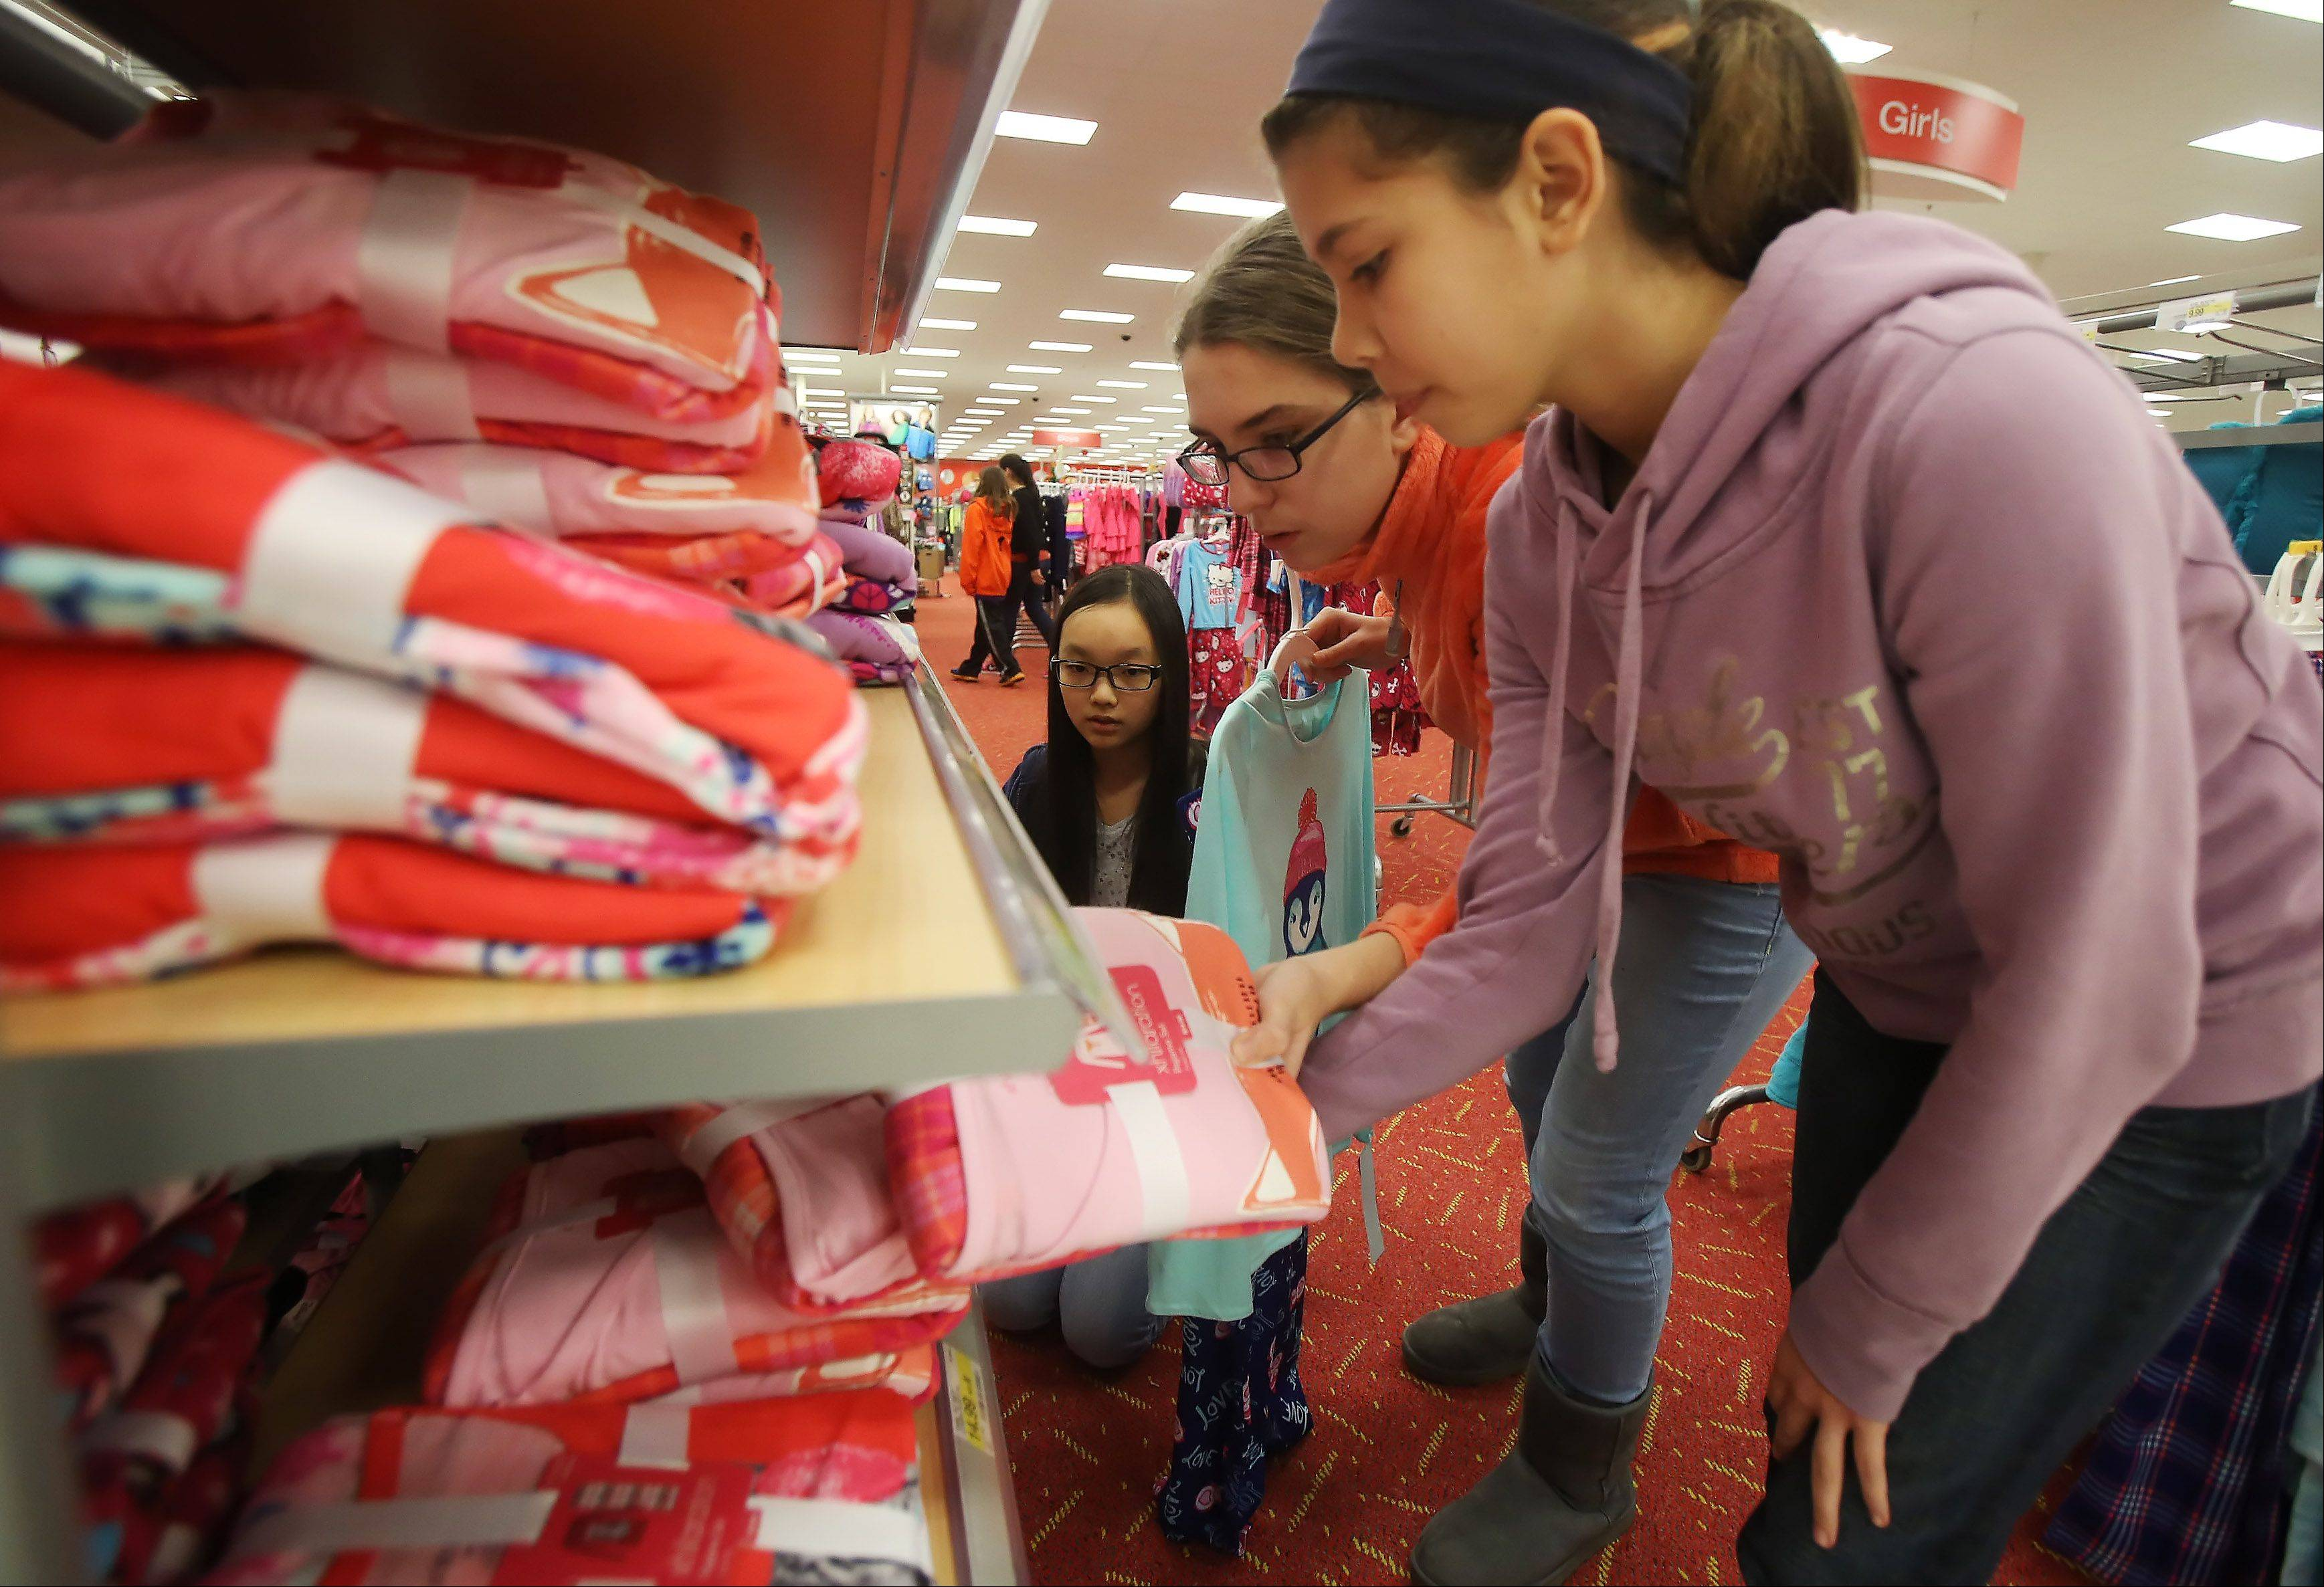 Seventh graders Stephanie Rivas, right, Julia Sulicka and Anna Lee, pick out pajamas as students from Carl Sandbug Middle School select toys and clothing from Target in Mundelein on Tuesday a needy Mundelein family. The Community Service Club raised $333 to help the family for the holidays.